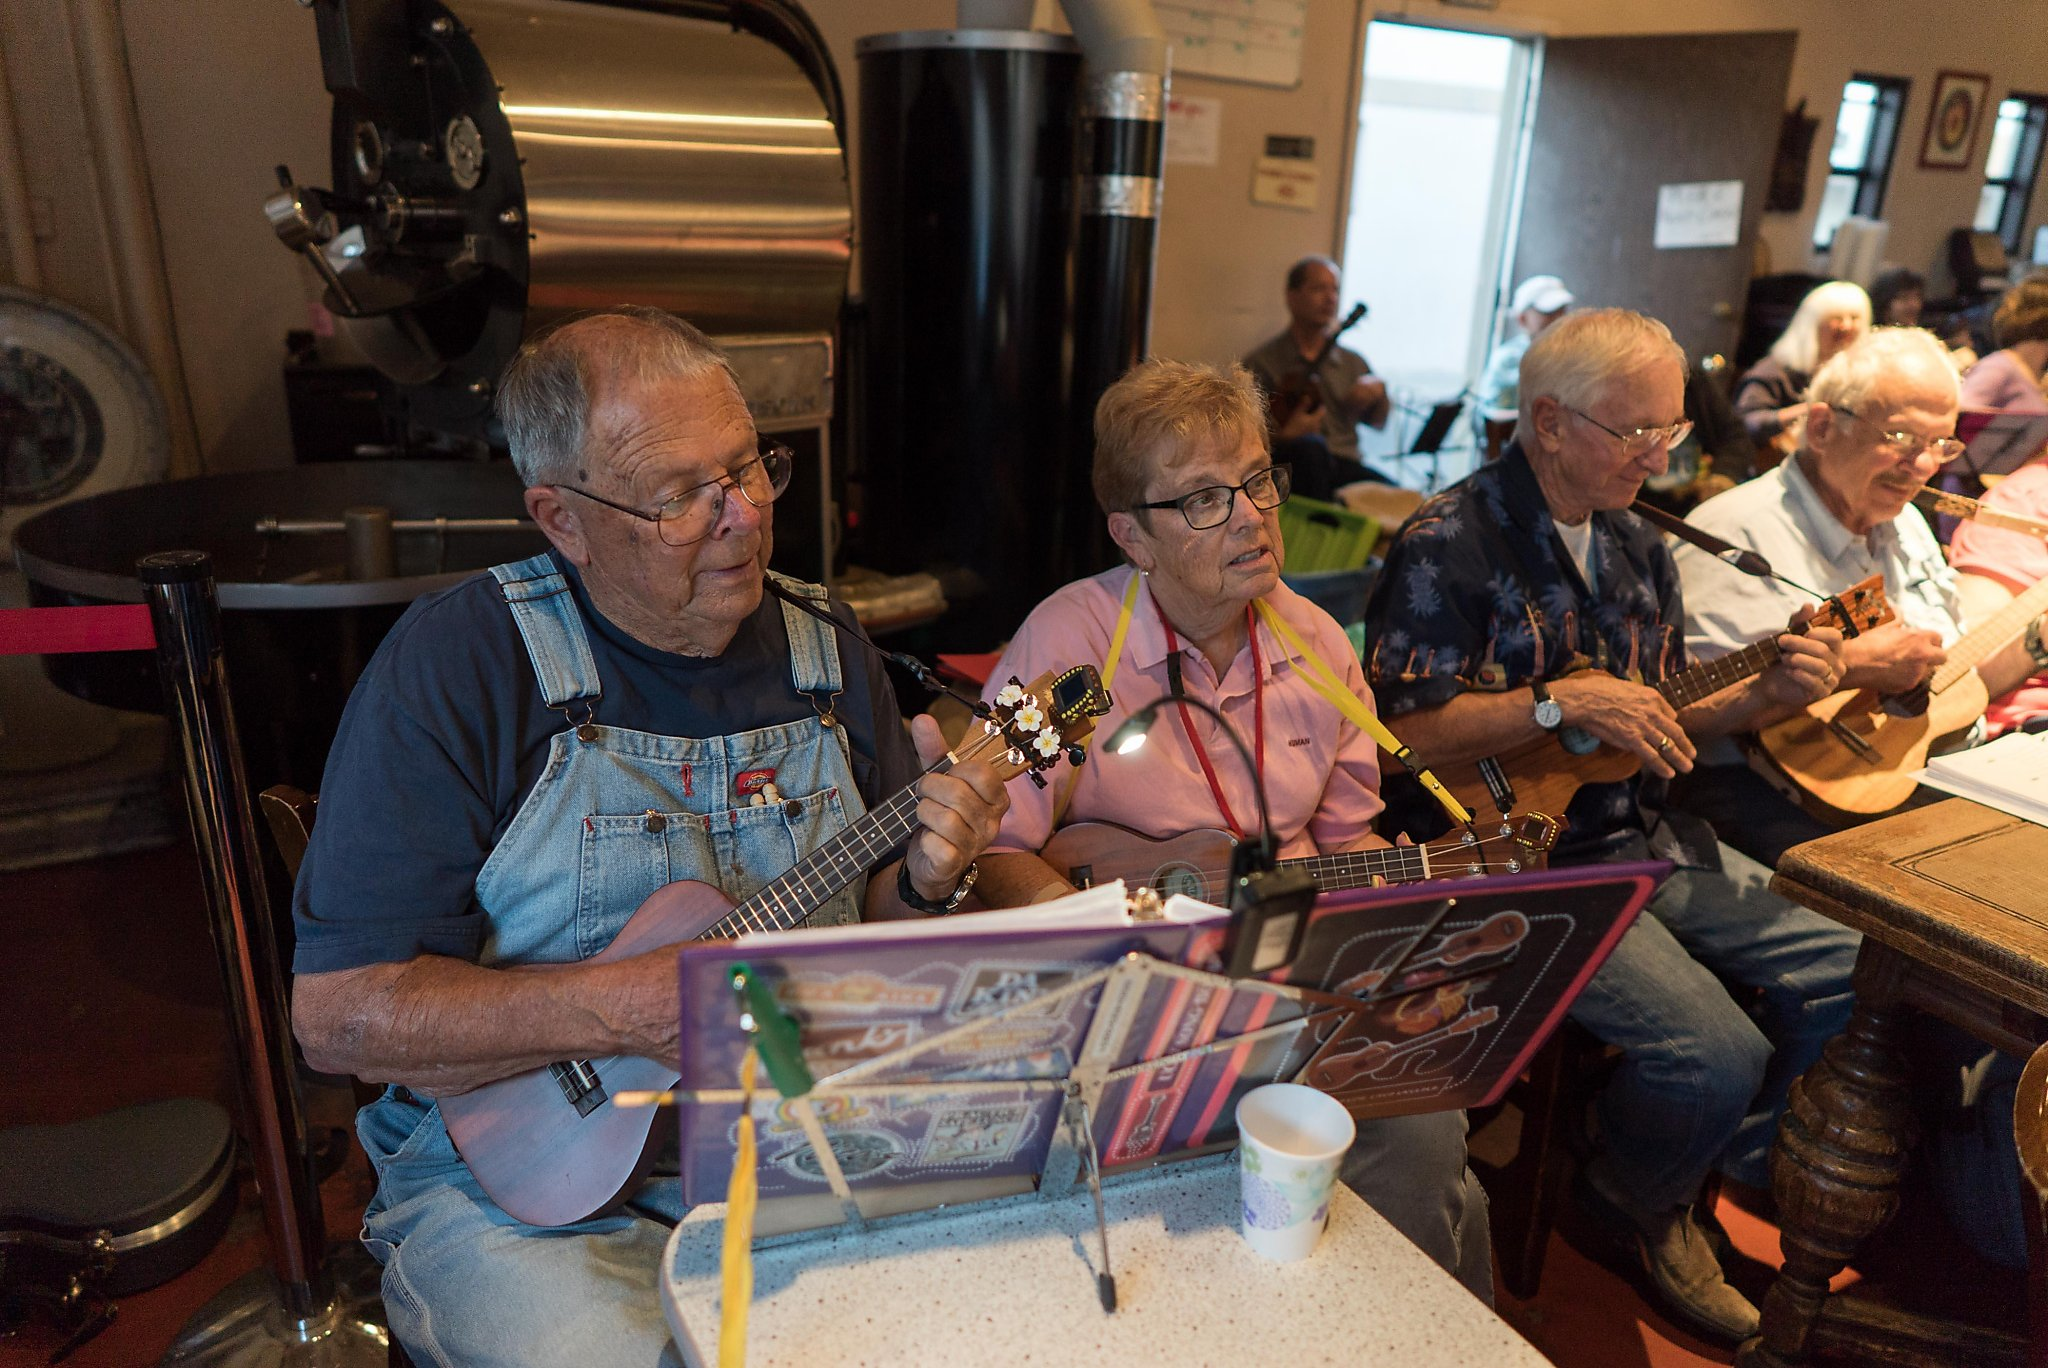 Ukuleles Strike A Chord With Seniors Sfchronicle